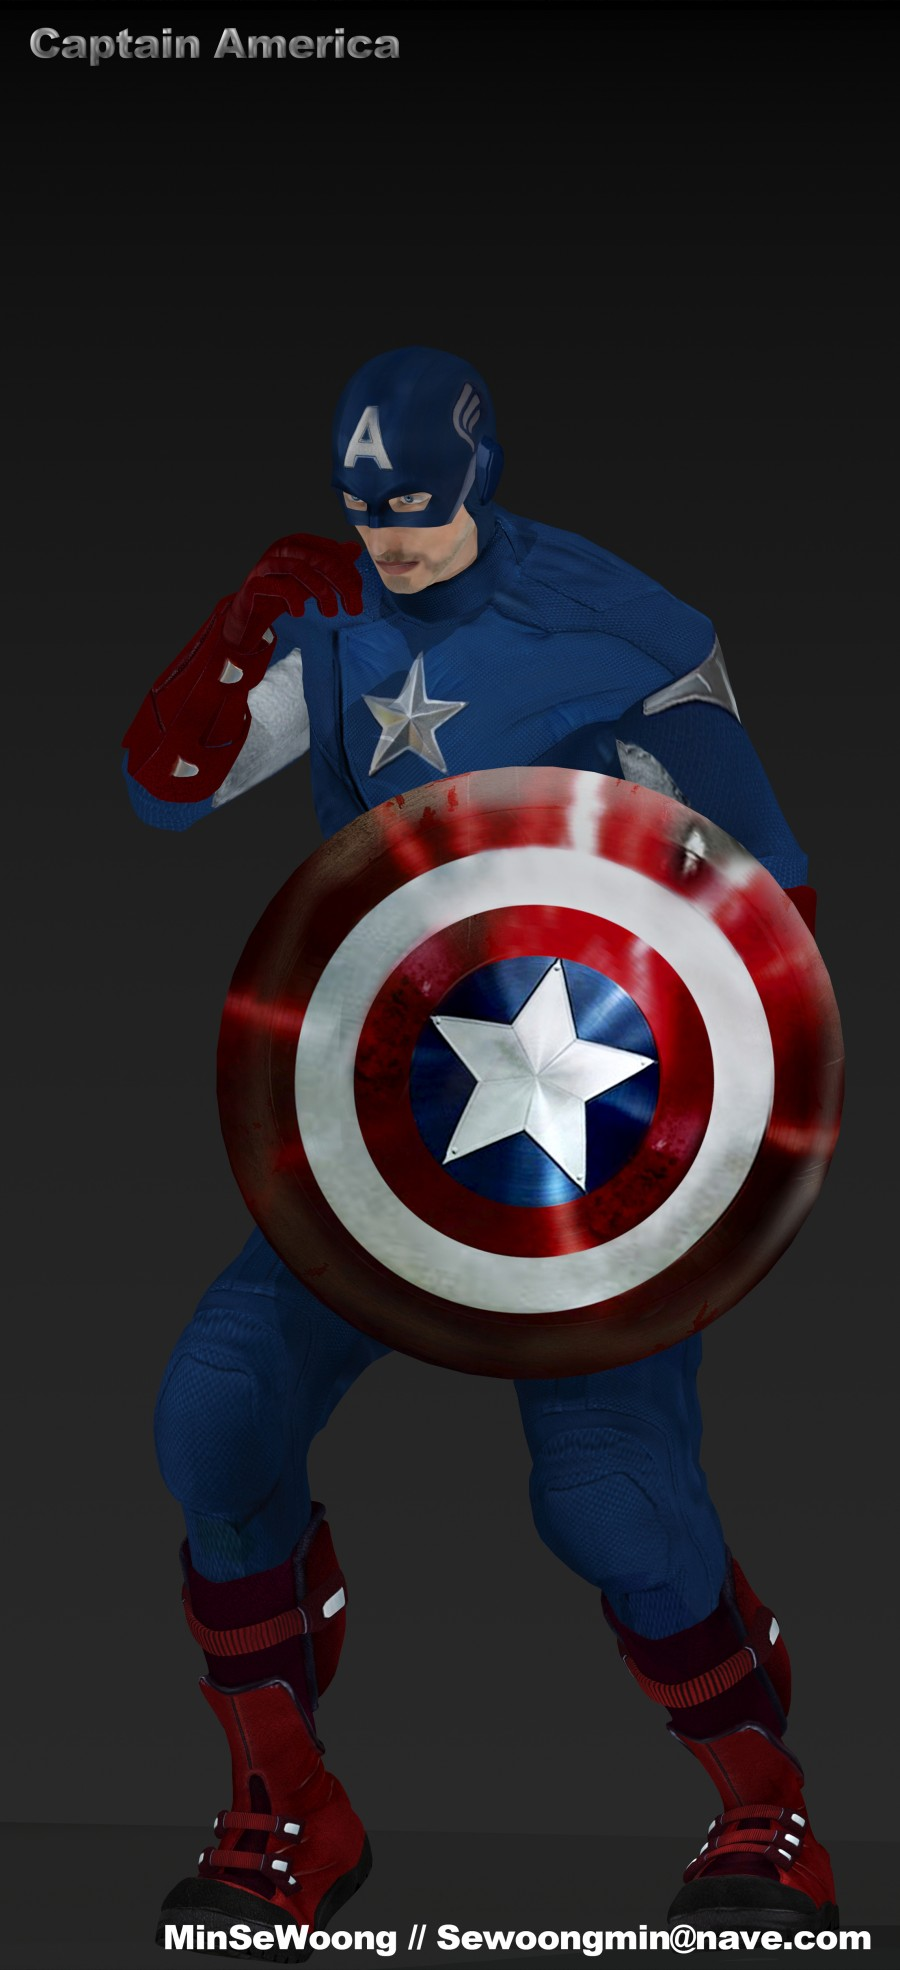 CaptainAmerica_3.jpg